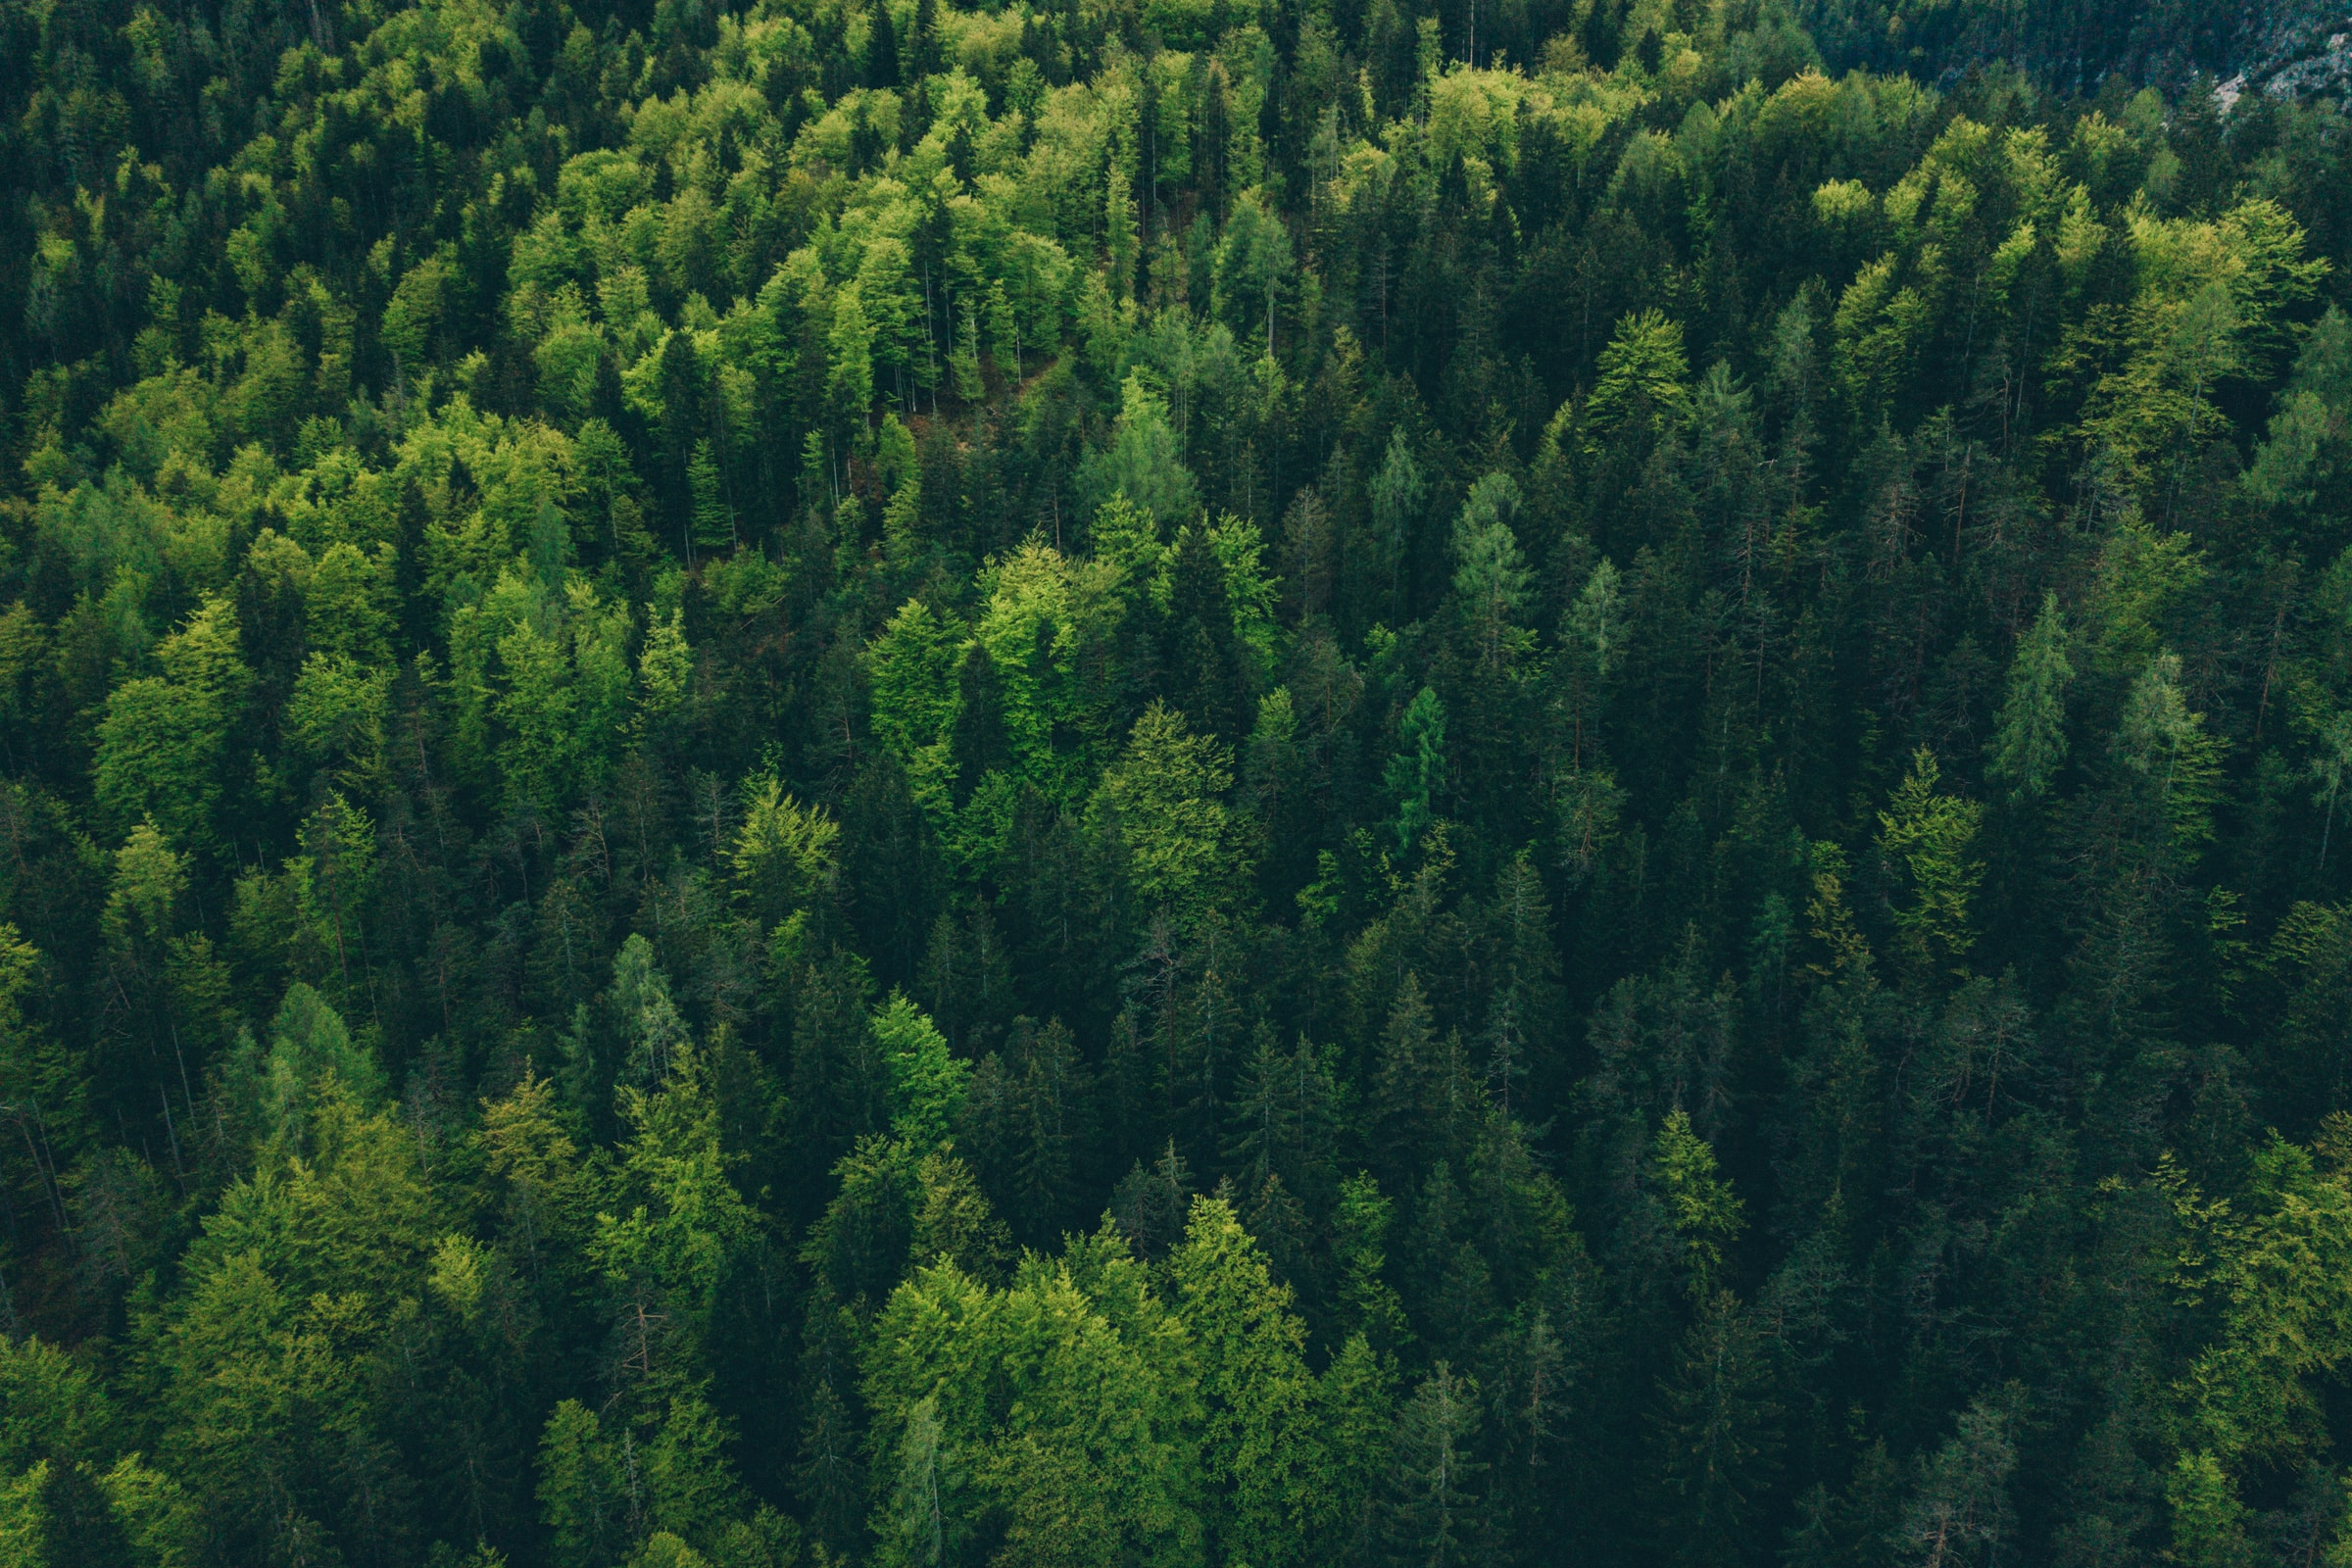 A photograph of a forest from above - taken in a helicopter, or drone.